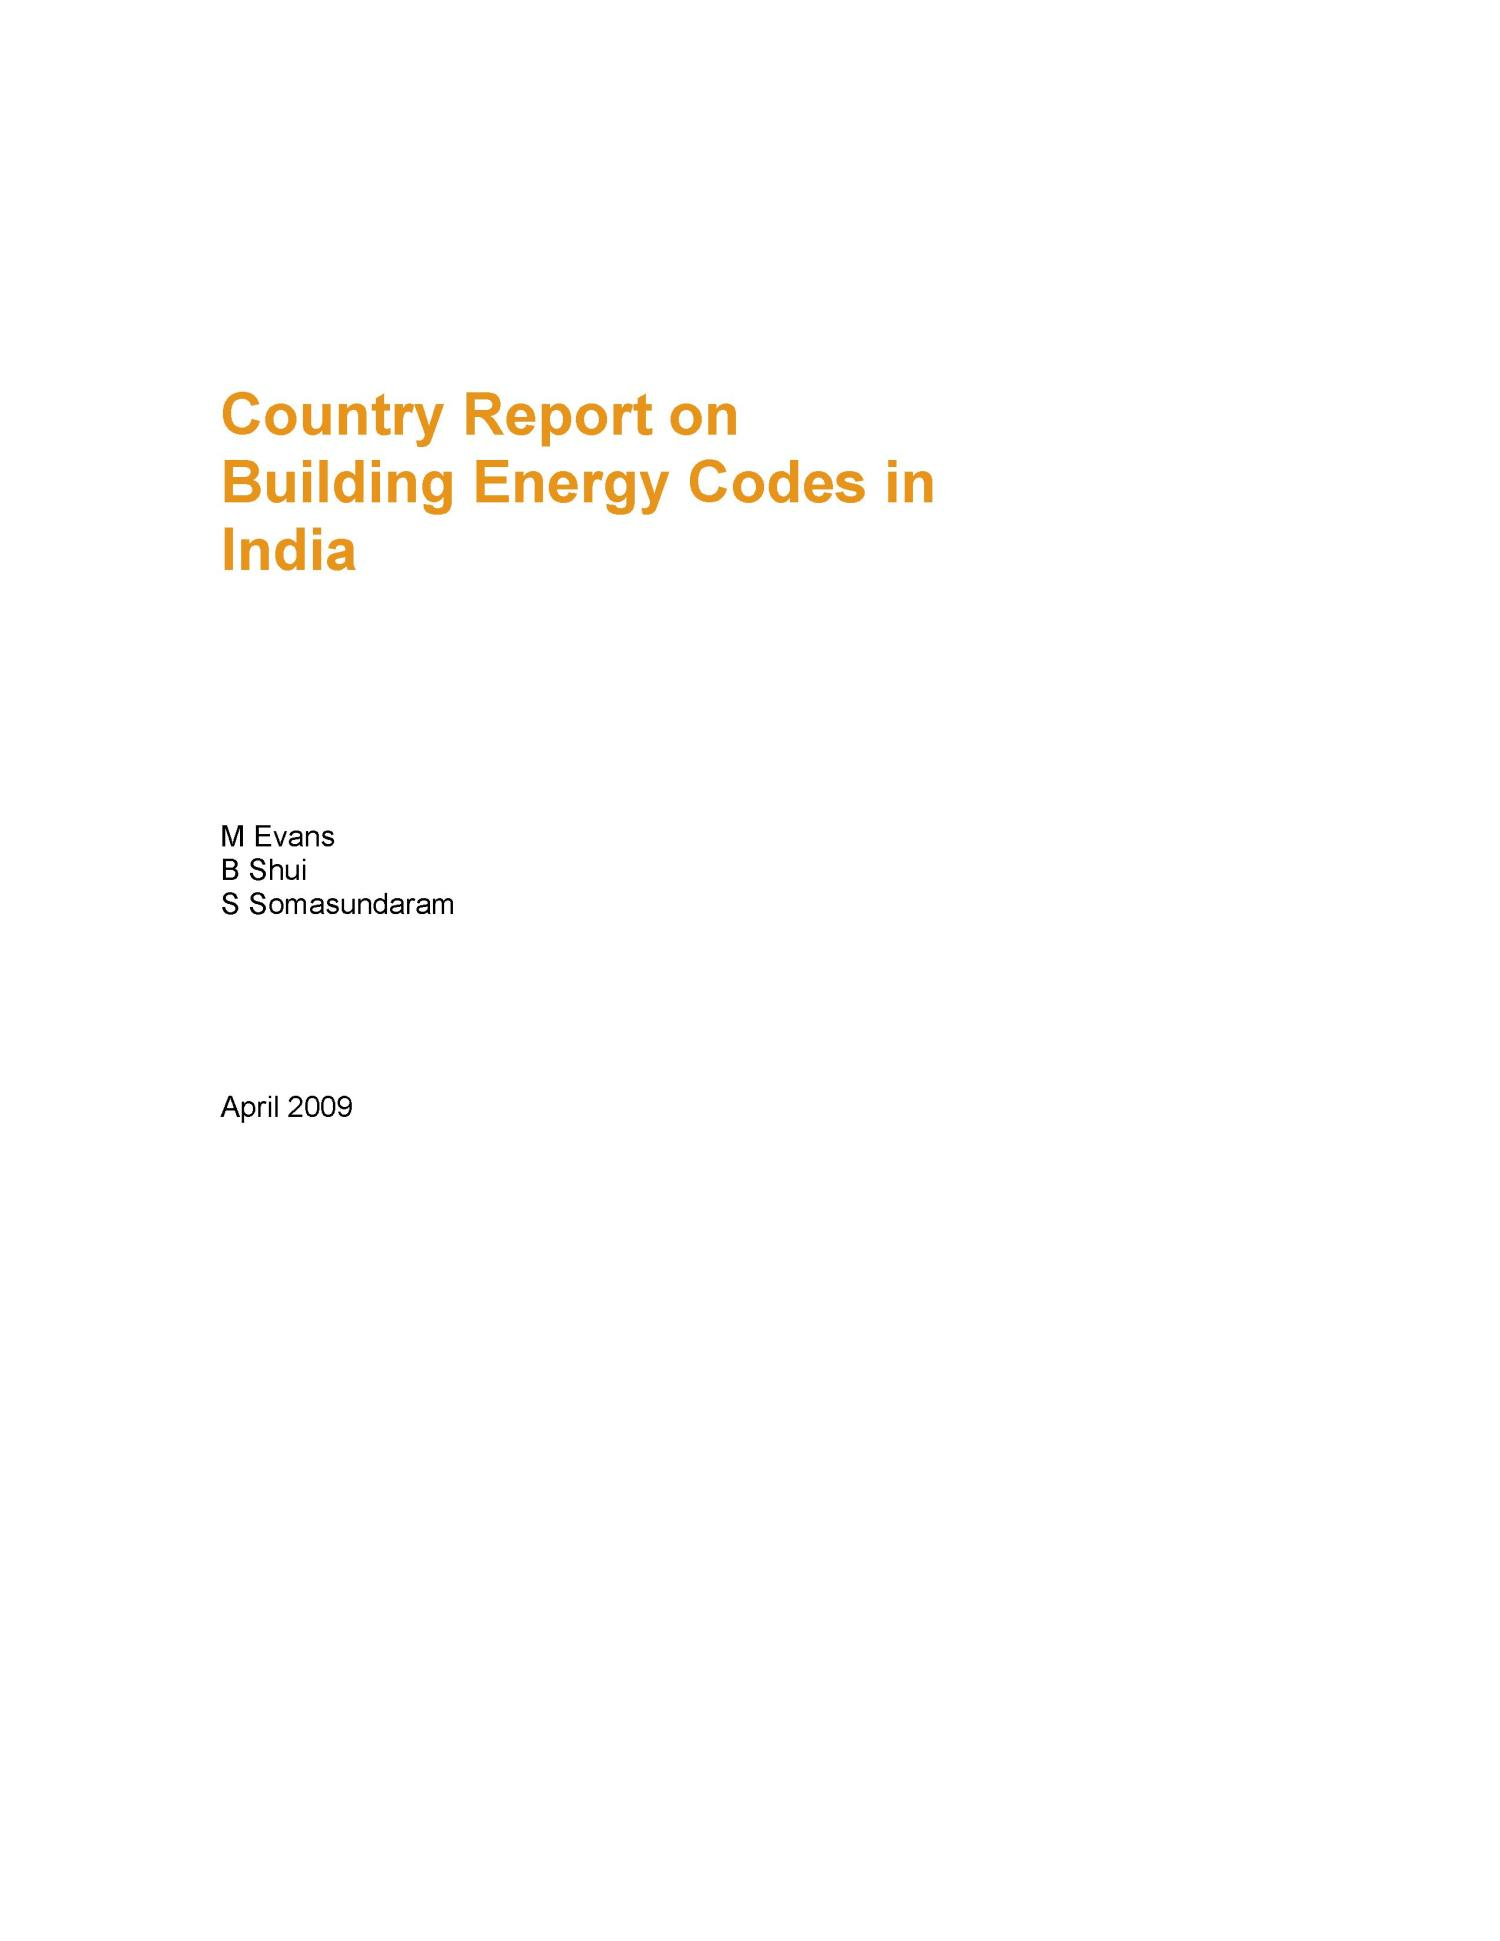 Country Report on Building Energy Codes in India                                                                                                      [Sequence #]: 3 of 24